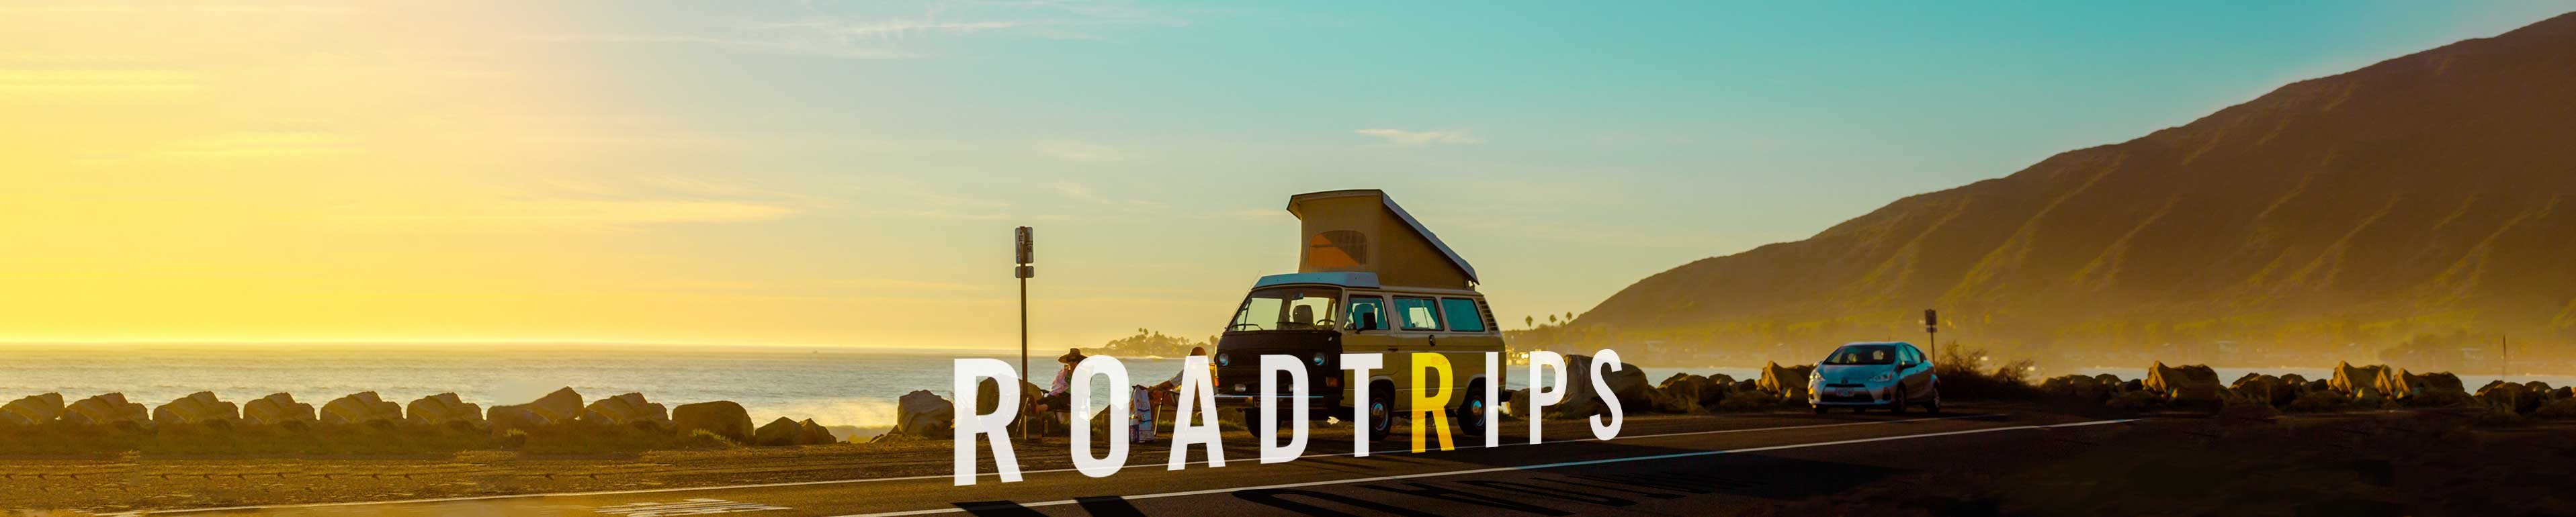 20190930 roadtrip tips Blog Banner 3834x770